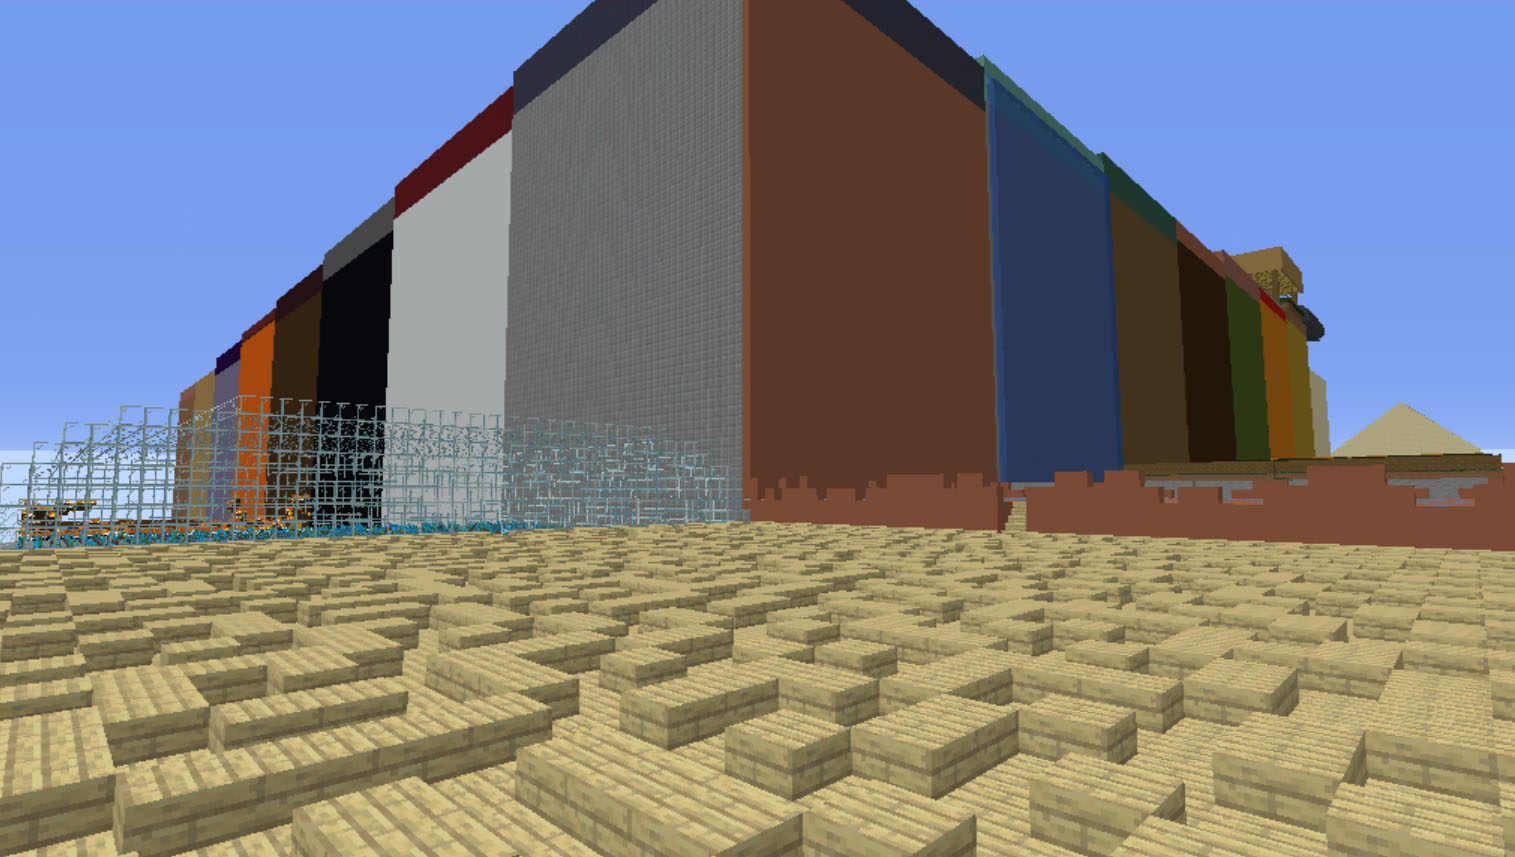 A huge square builing overlooking a wooden maze in Minecraft